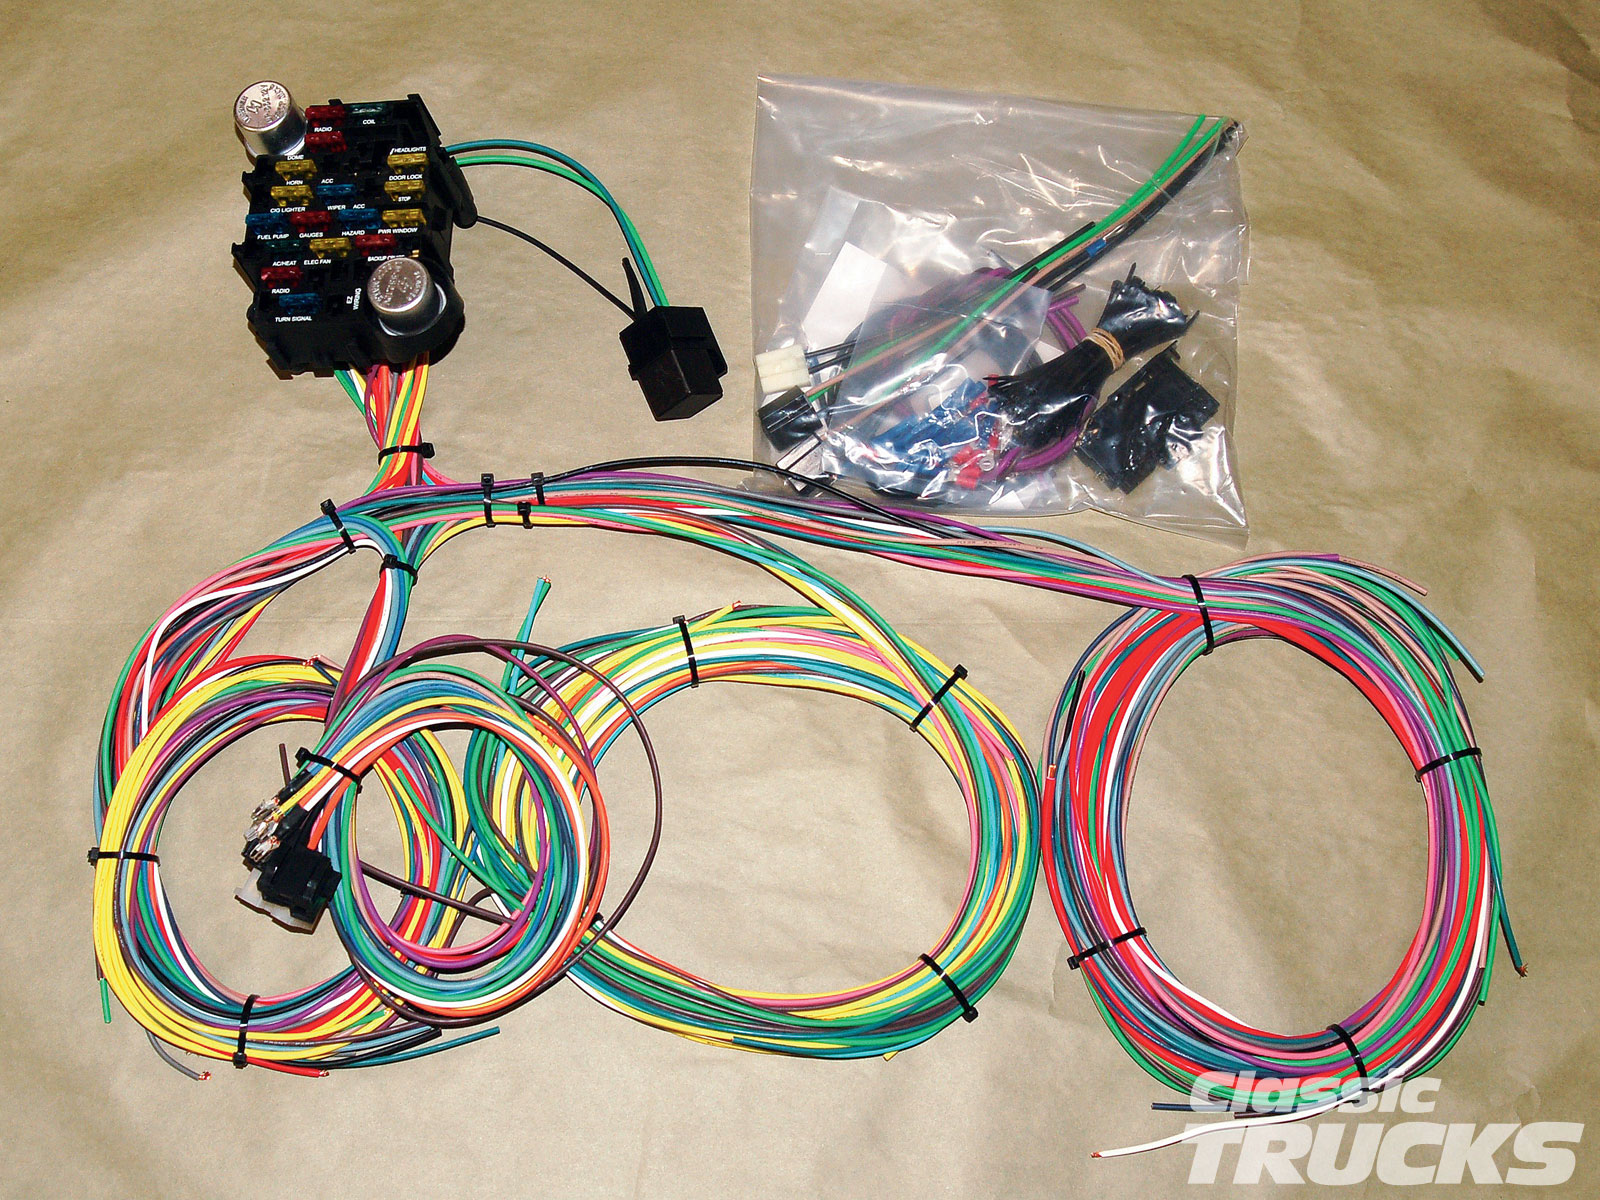 1010clt 02 o aftermarket wiring harness install kit?resize\\\=665%2C499 painless wiring harness australia tamahuproject org universal wiring harness australia at eliteediting.co